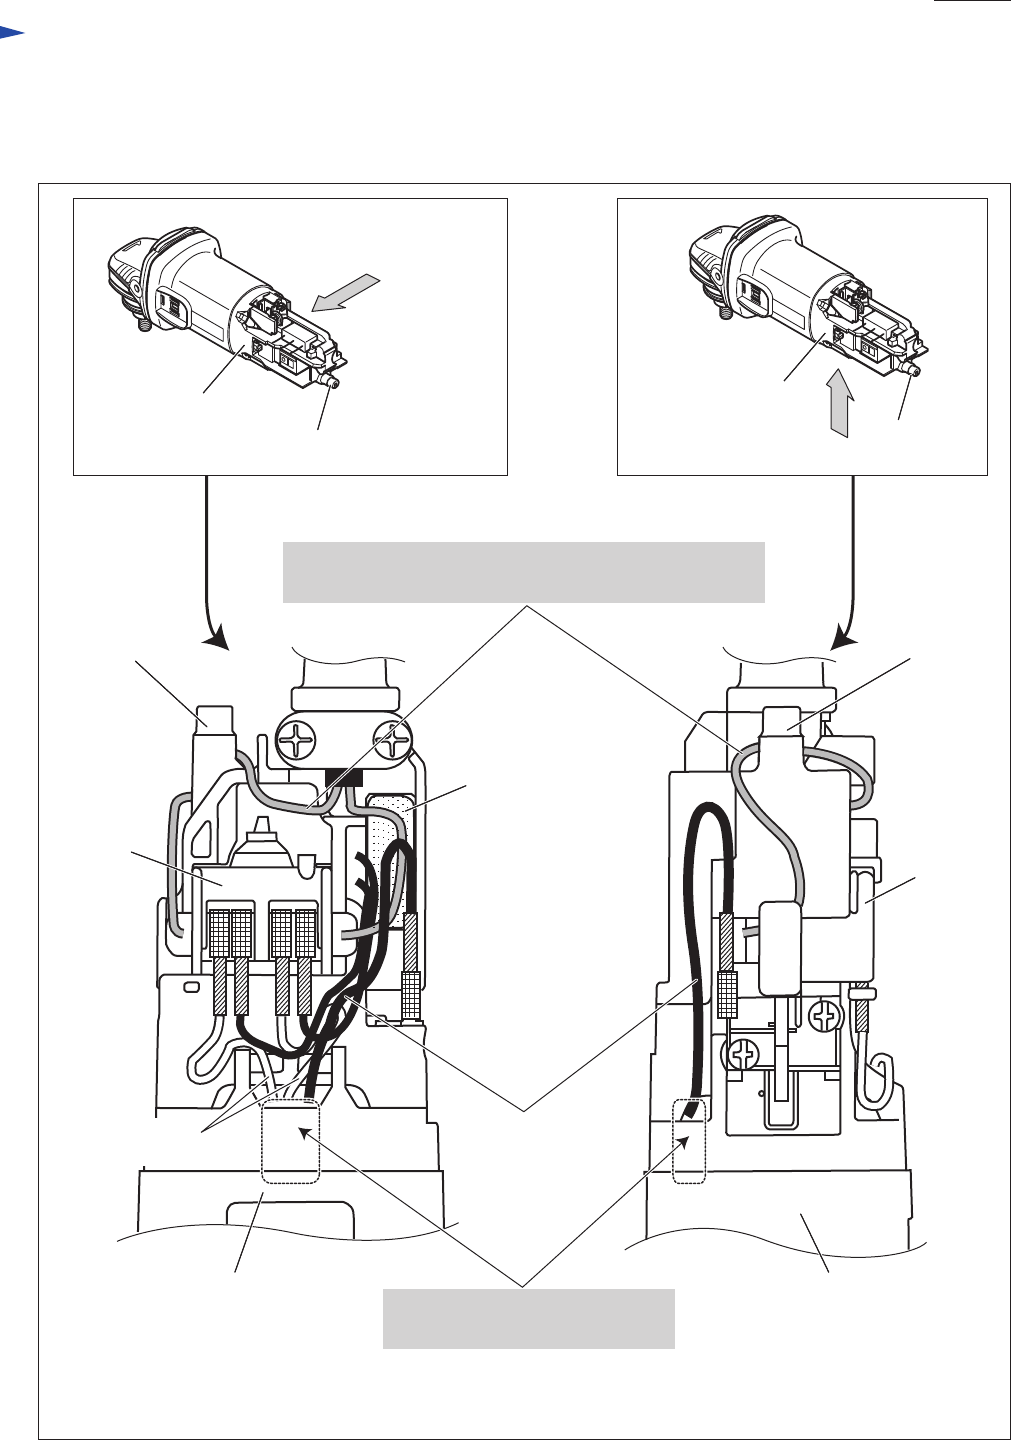 grinder wiring diagram   22 wiring diagram images